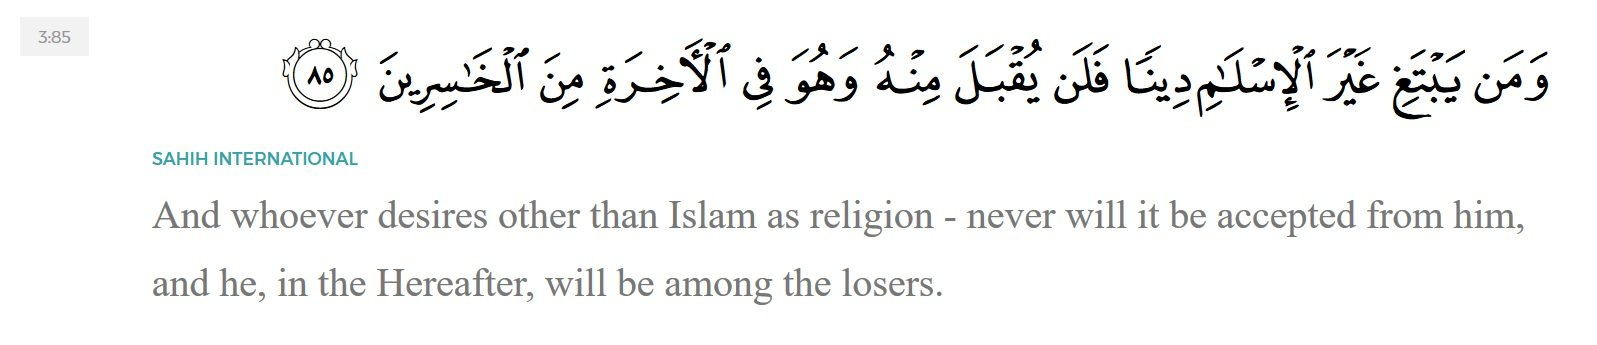 Quran about Islam3